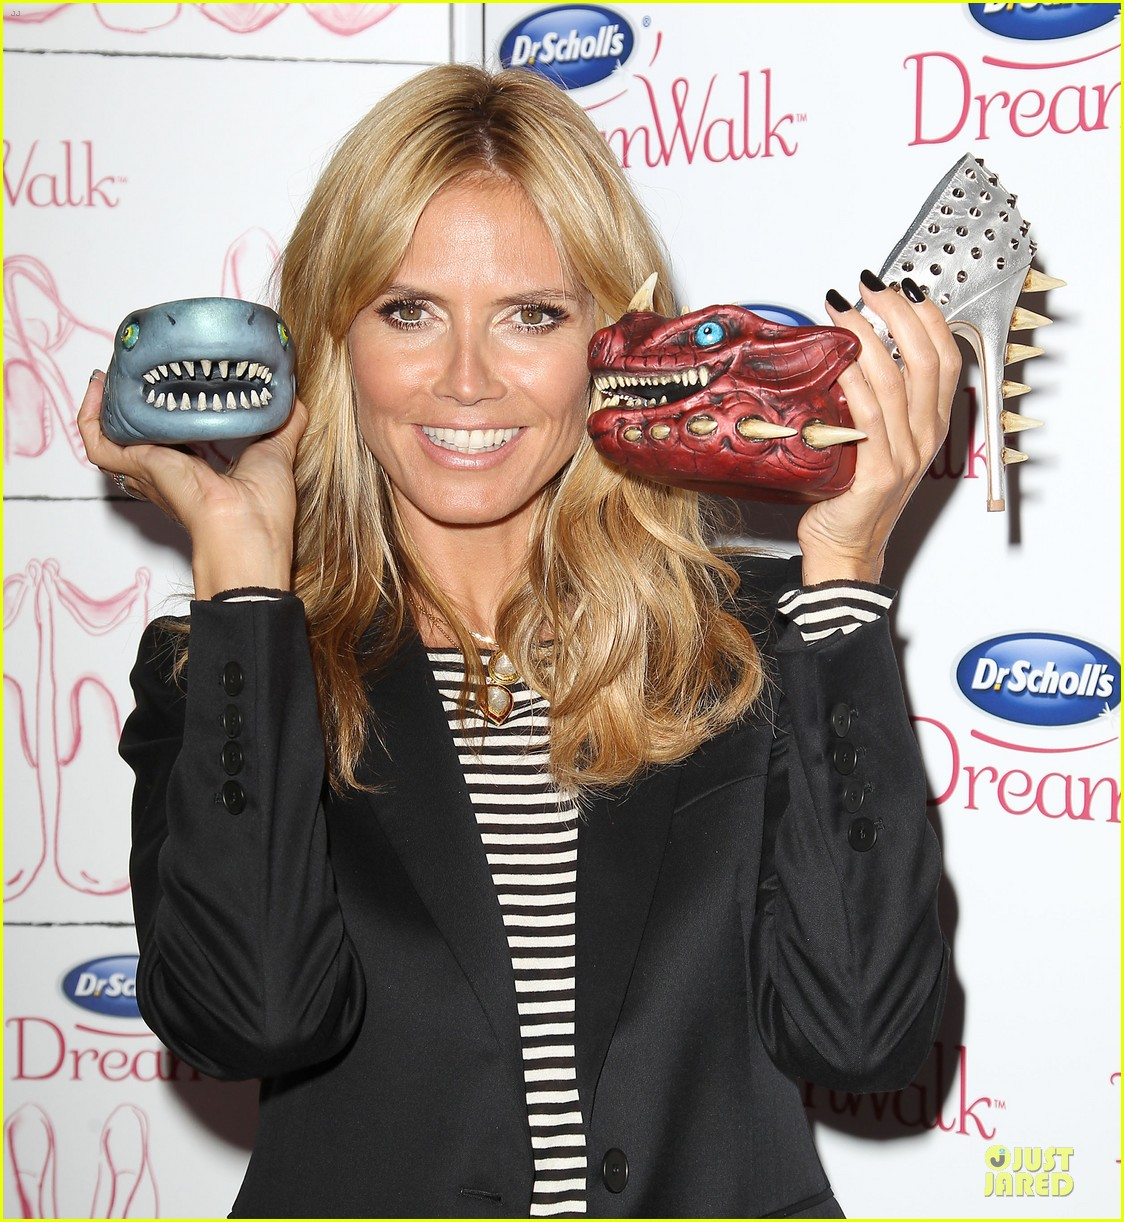 heidi klum dr scholl dreamwalk line meet needs 08